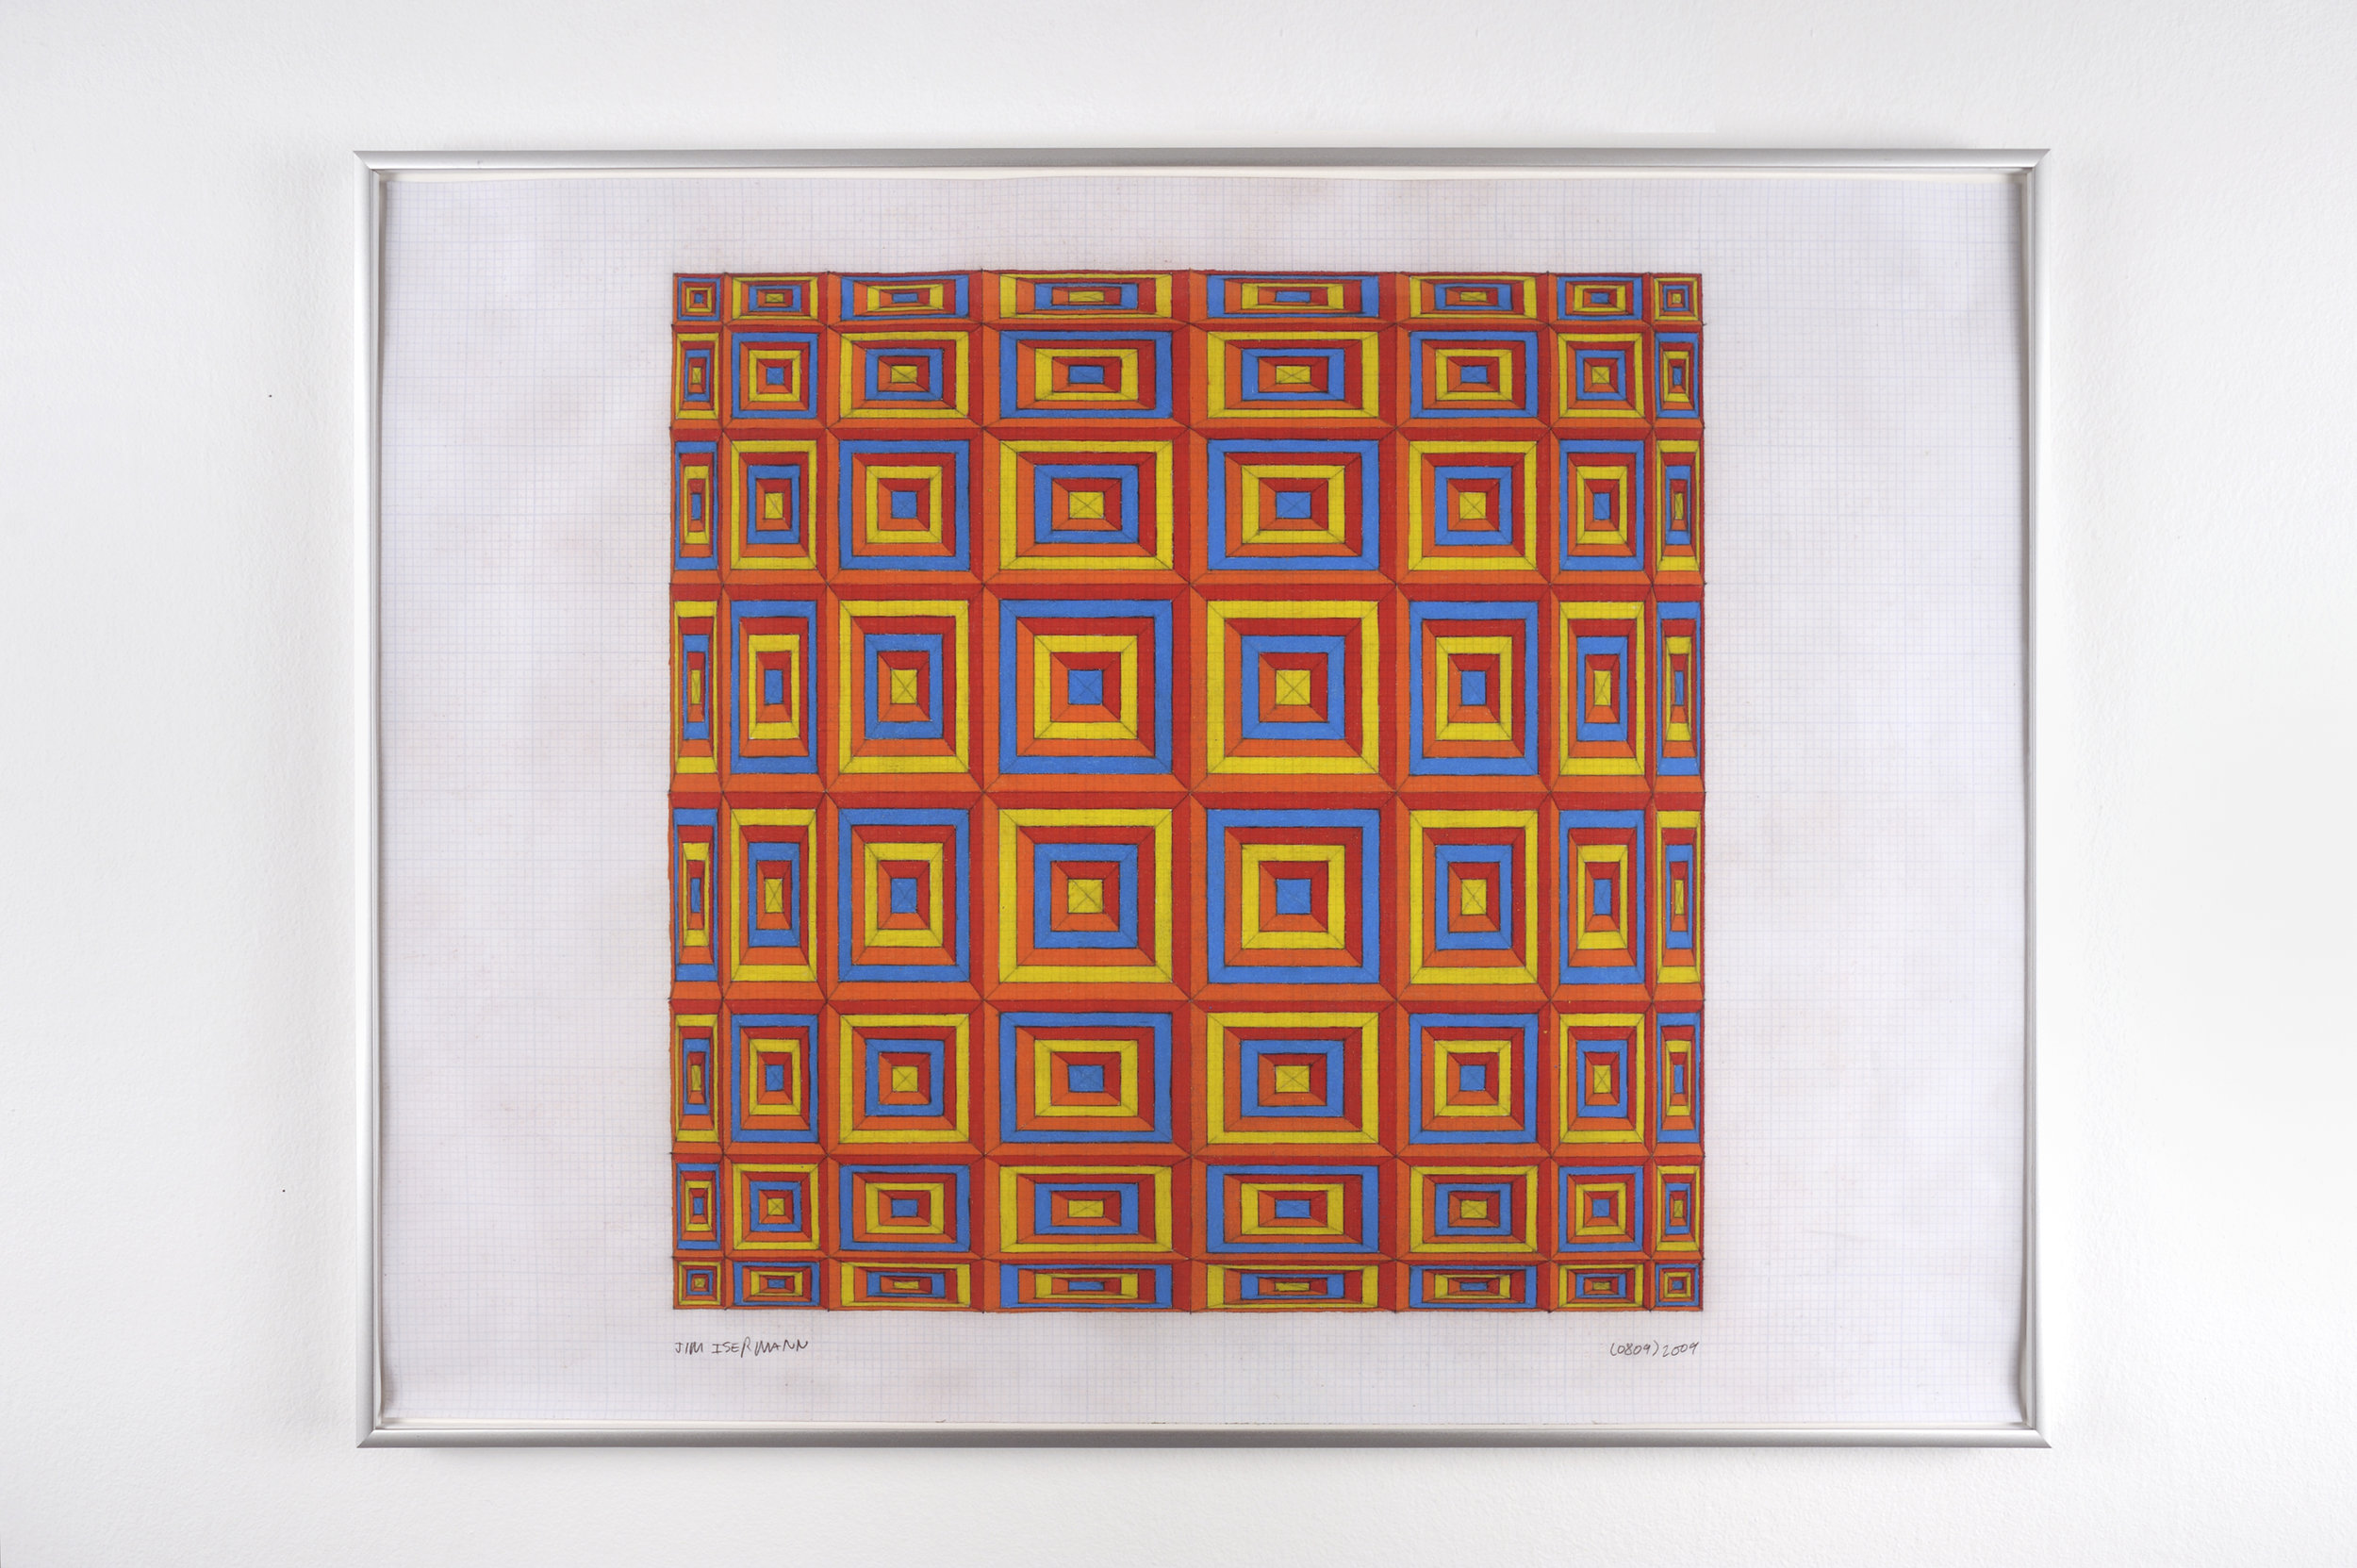 Untitled (0809), 2009 colored pencil on grid paper 47,5 x 62,7 cm - 18 3/4 x 24 5/8 inches